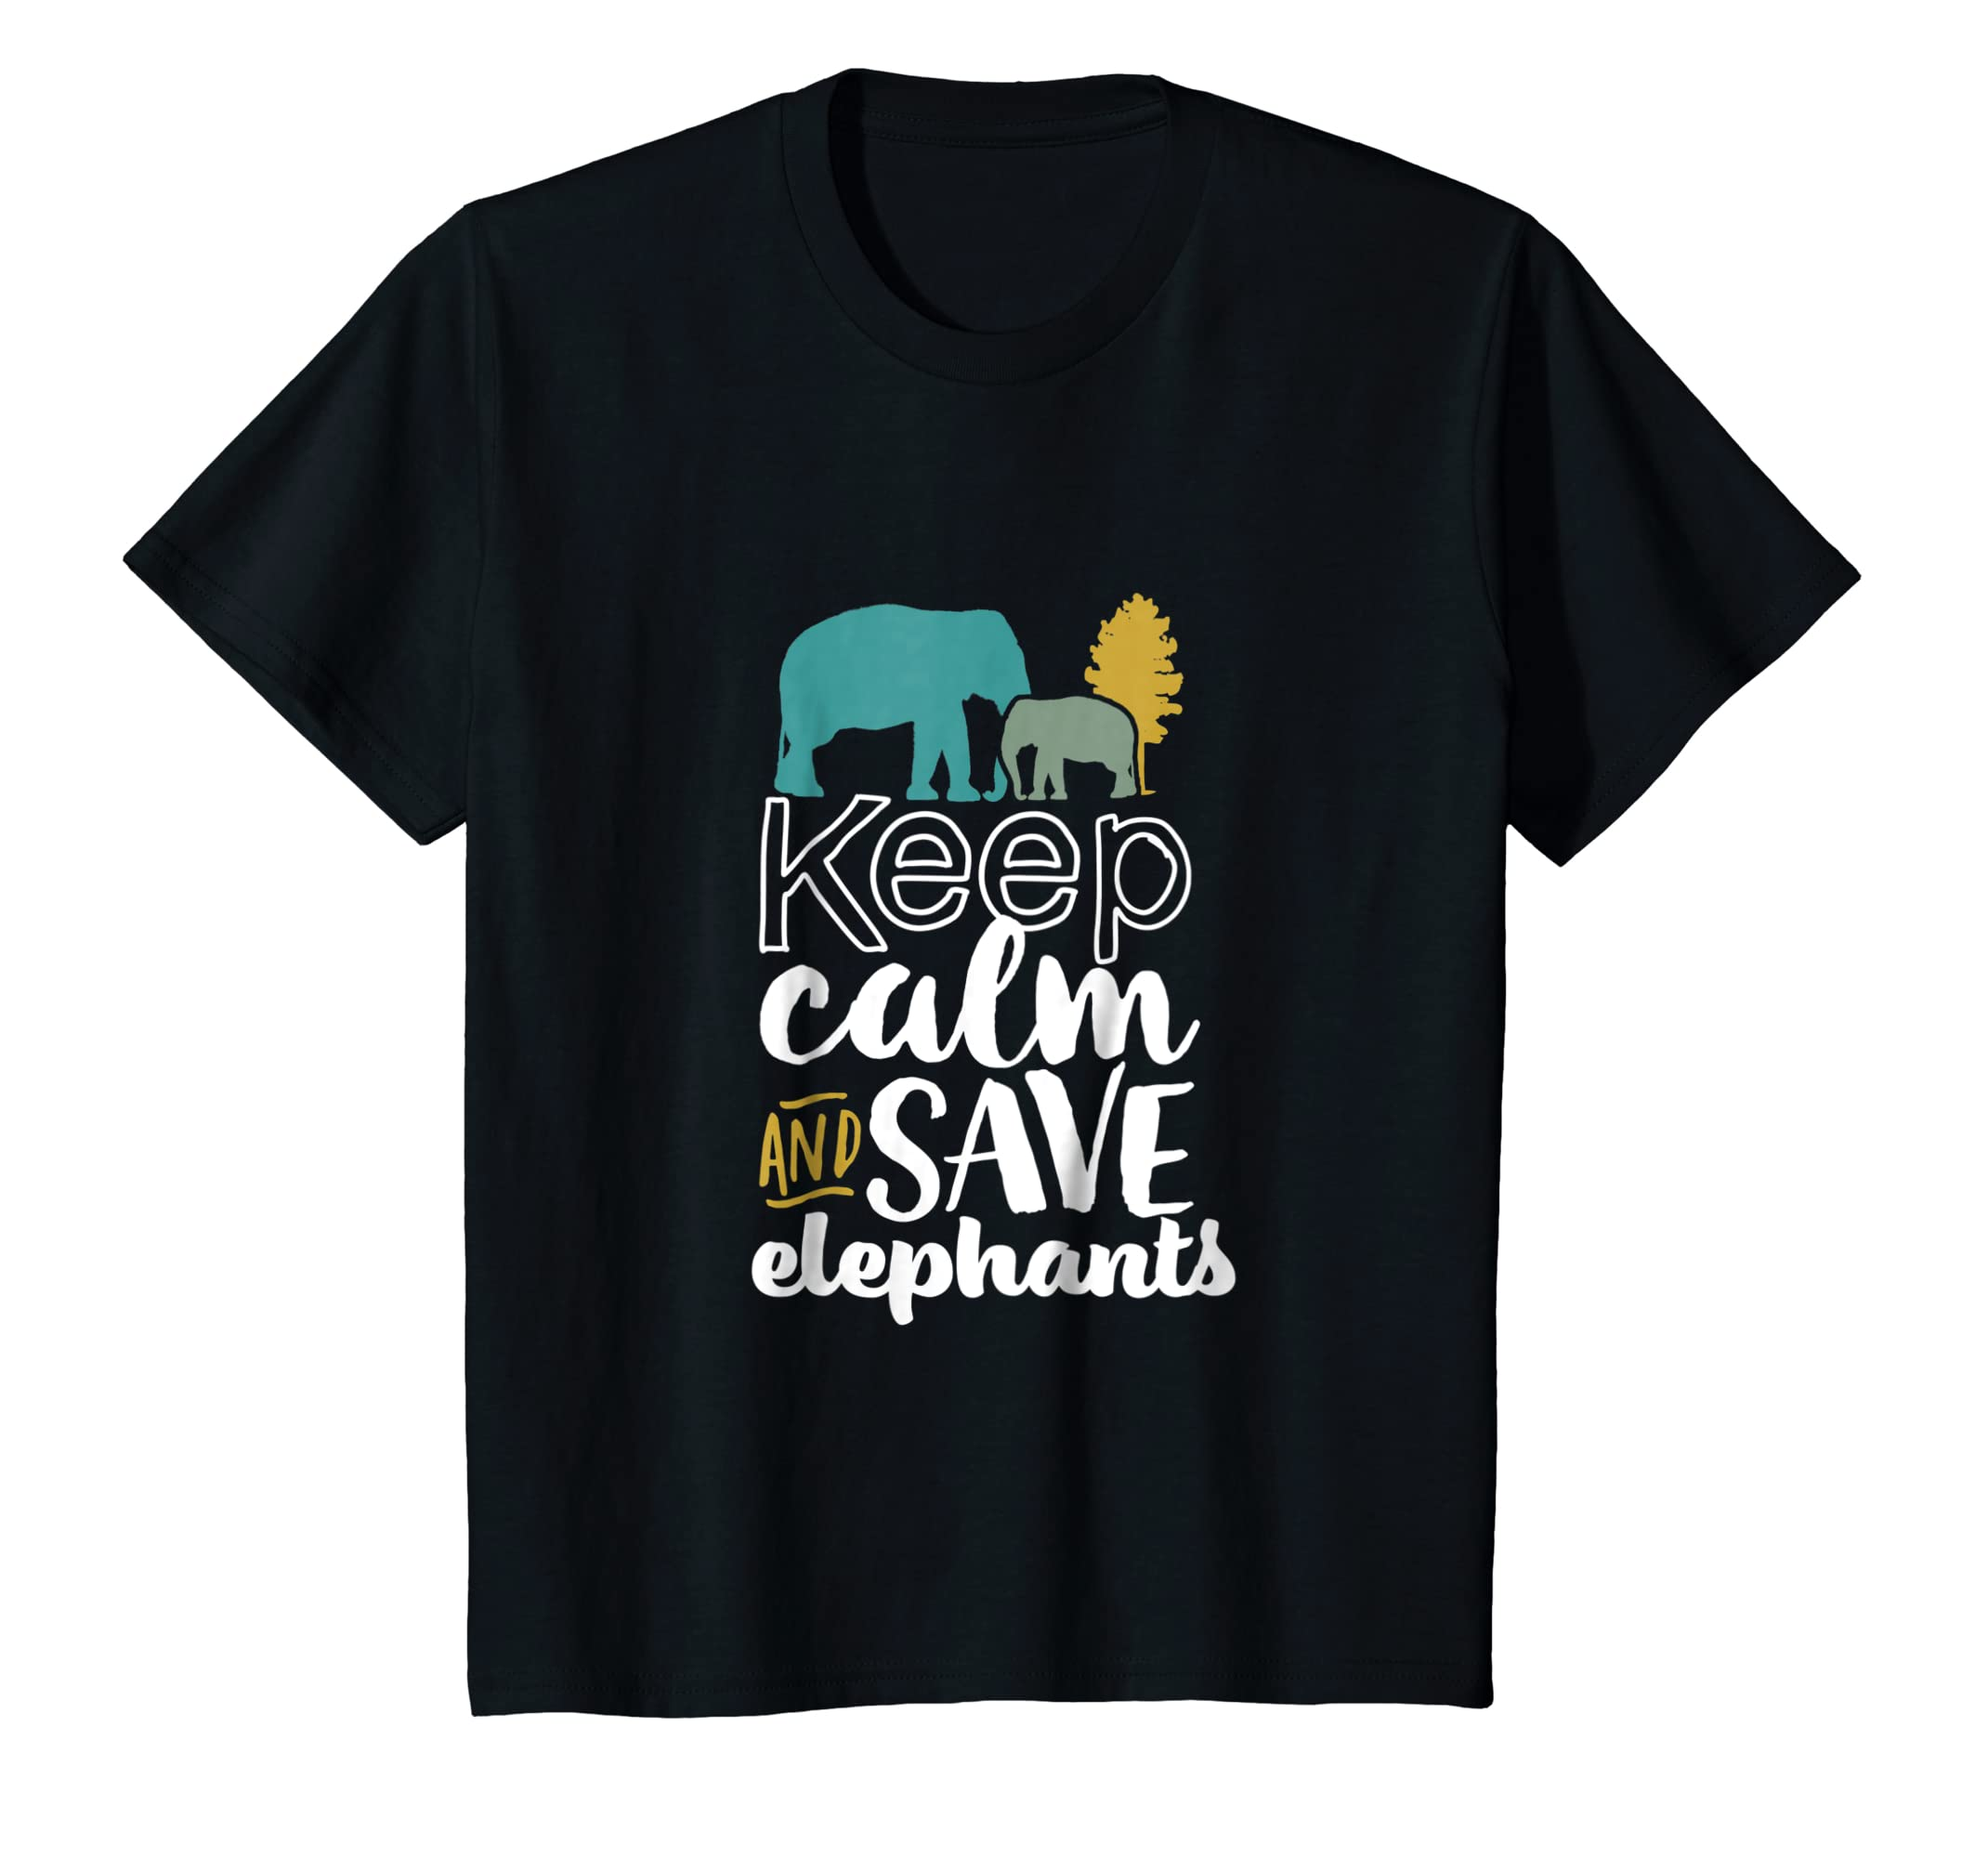 22060431d8b890 Amazon.com  Keep Calm and Save Elephants T-shirt for Wildlife Activist   Clothing